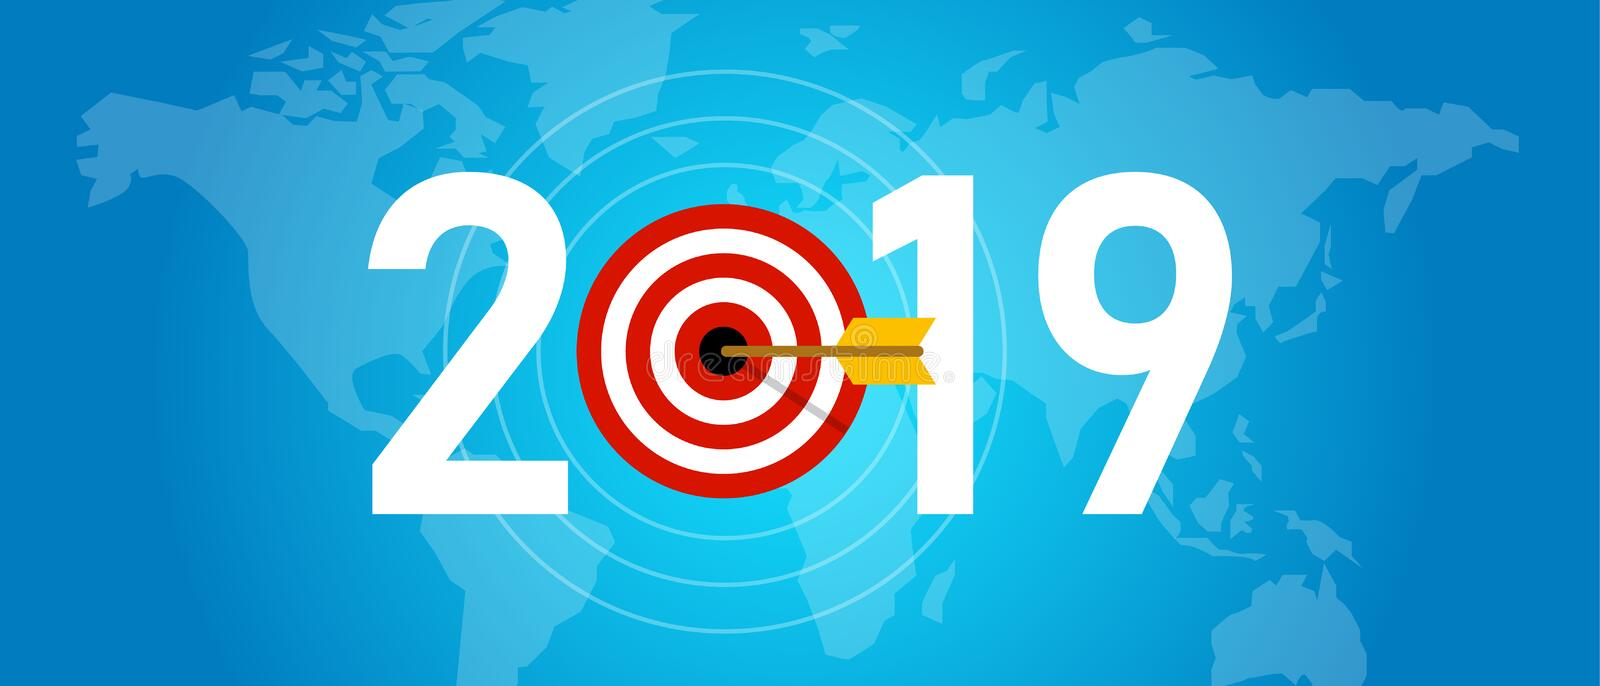 2019 new year target syombol of dart aiming for online media targeting and marketing strategy, blue background world royalty free illustration